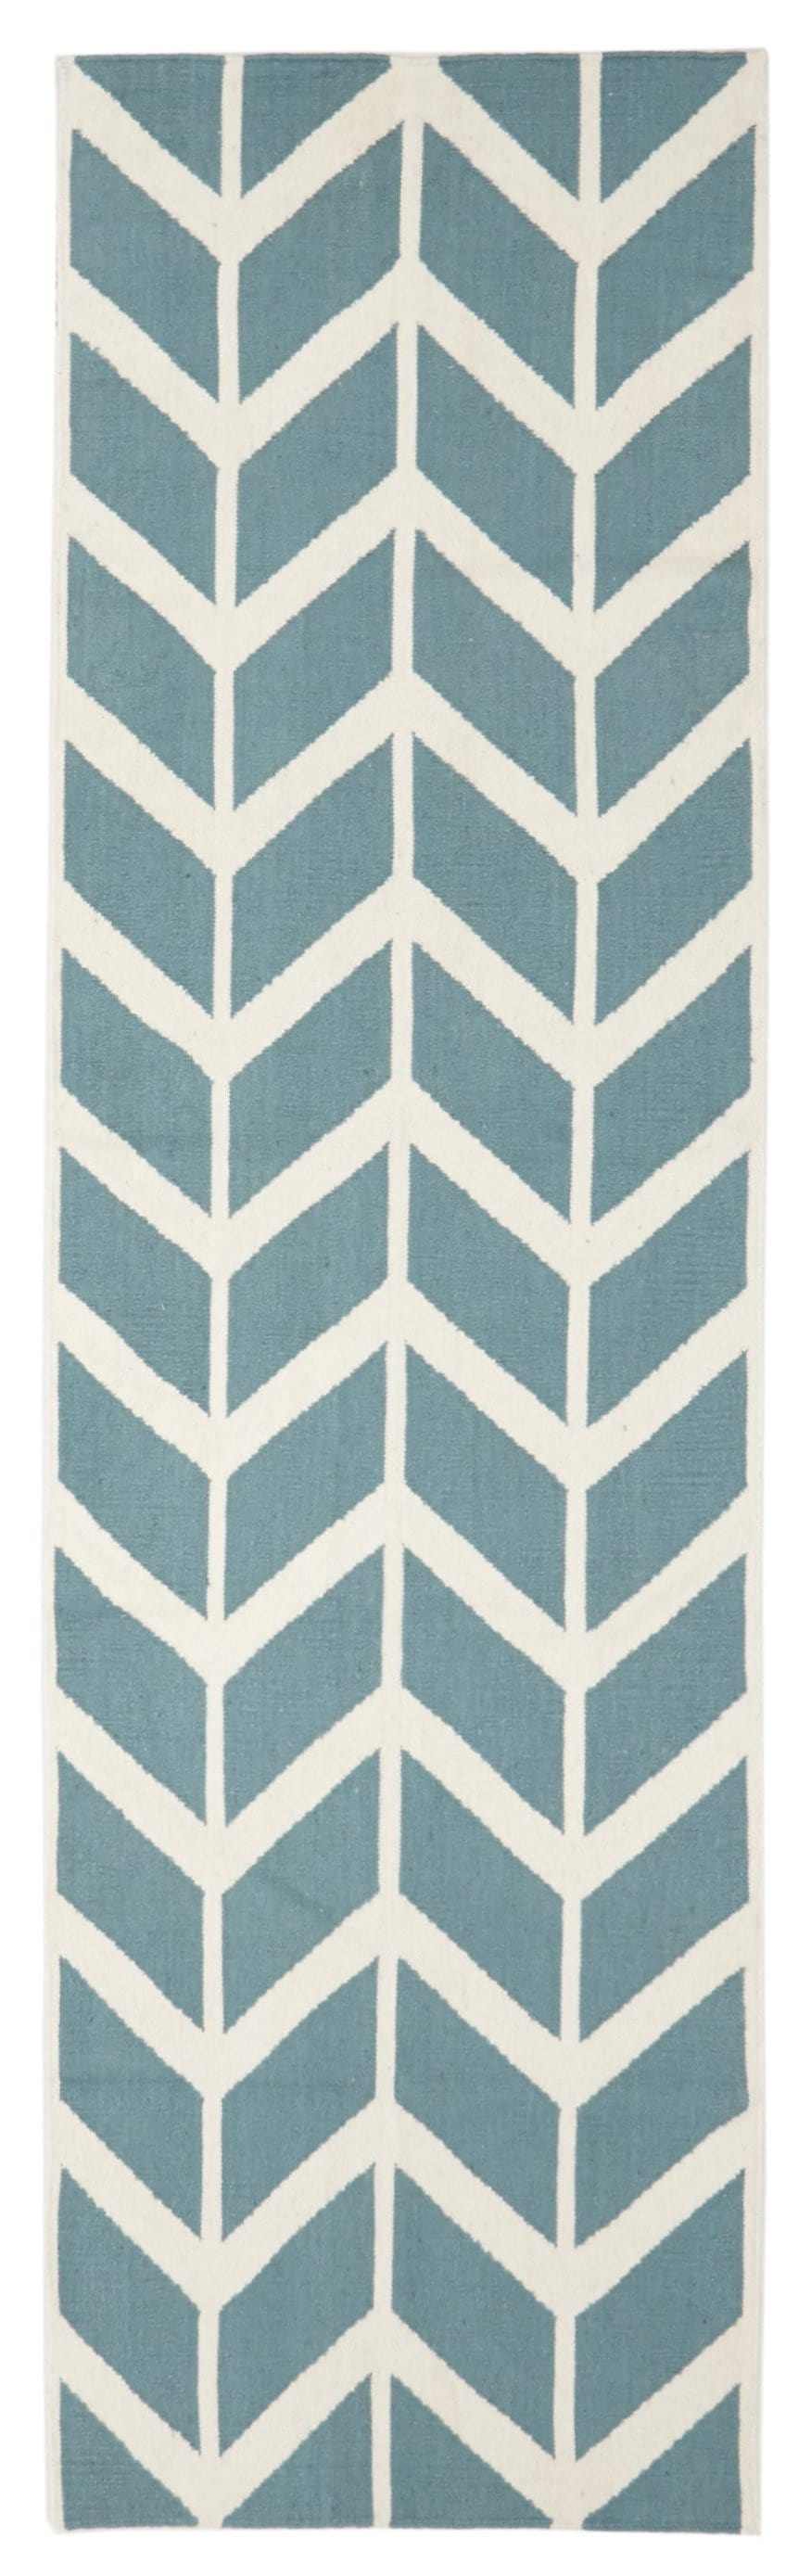 Lofoten Light Blue Arrow Wool Runner Rug